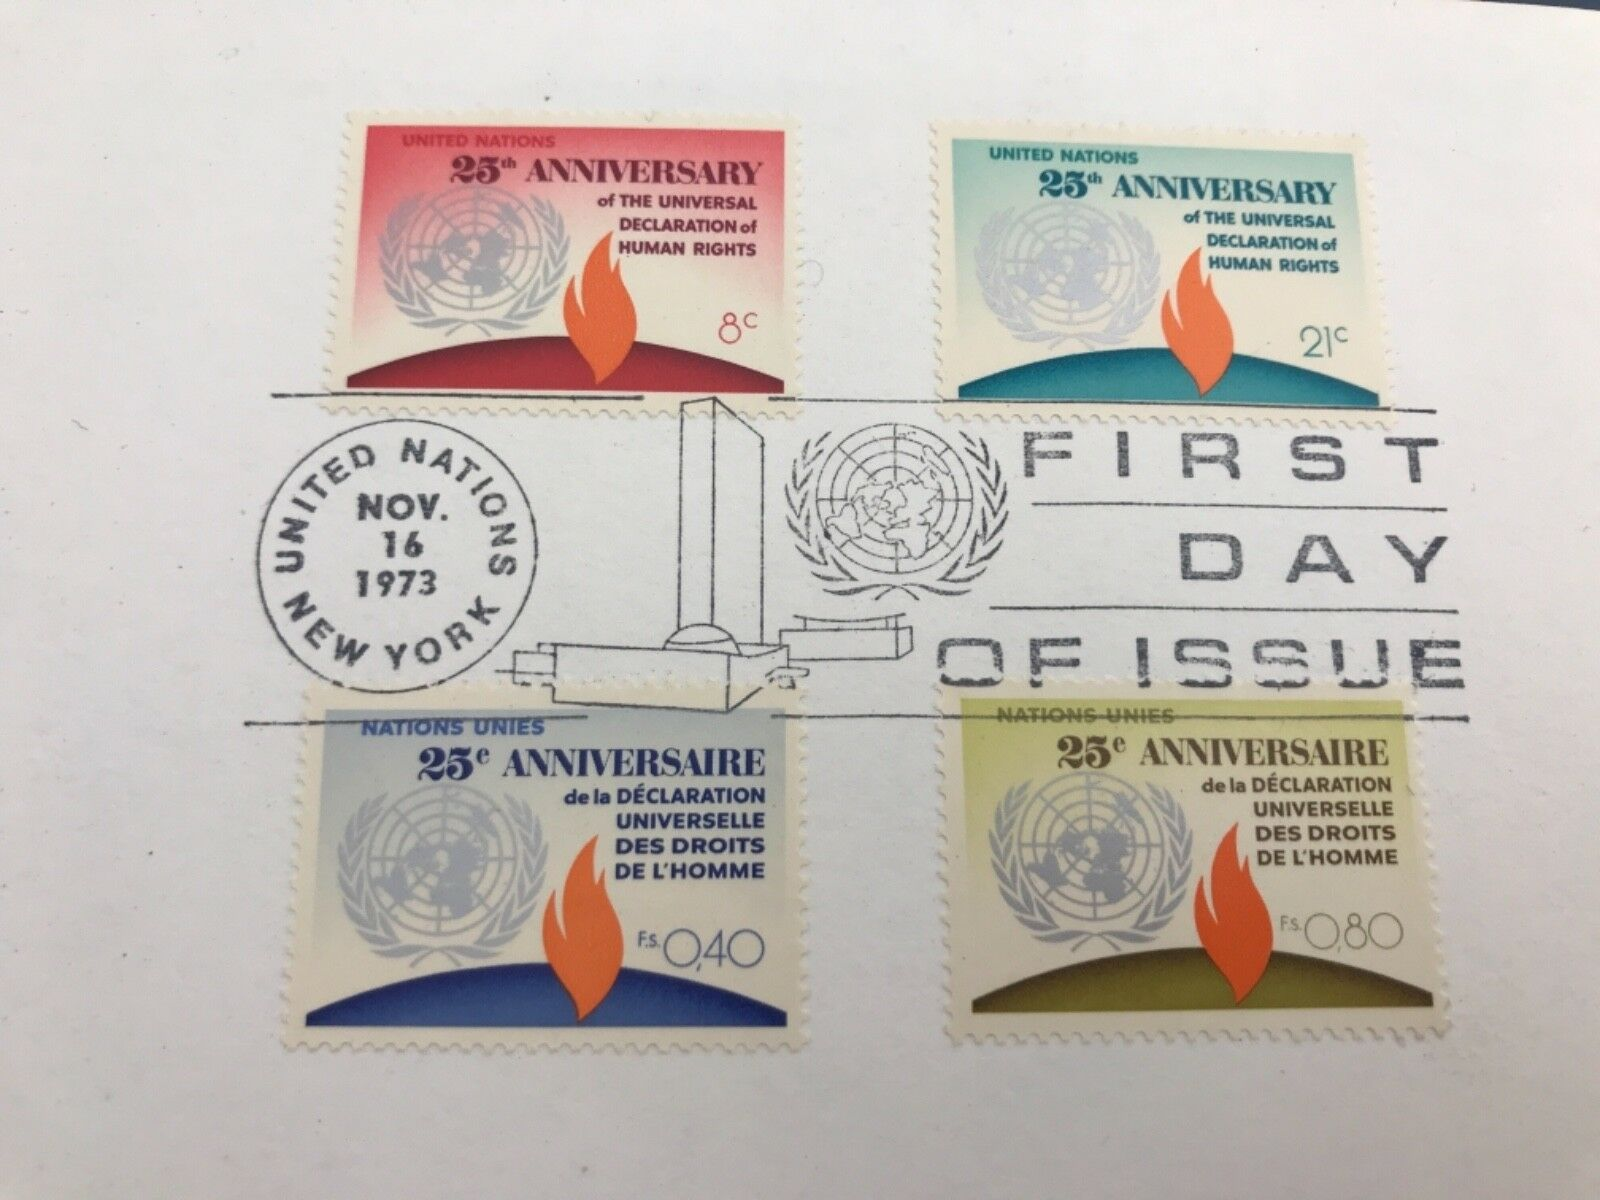 United Nations FDI Nov 16, 1973 New York 25th Anniversary Stamps Human Rights - $1.25